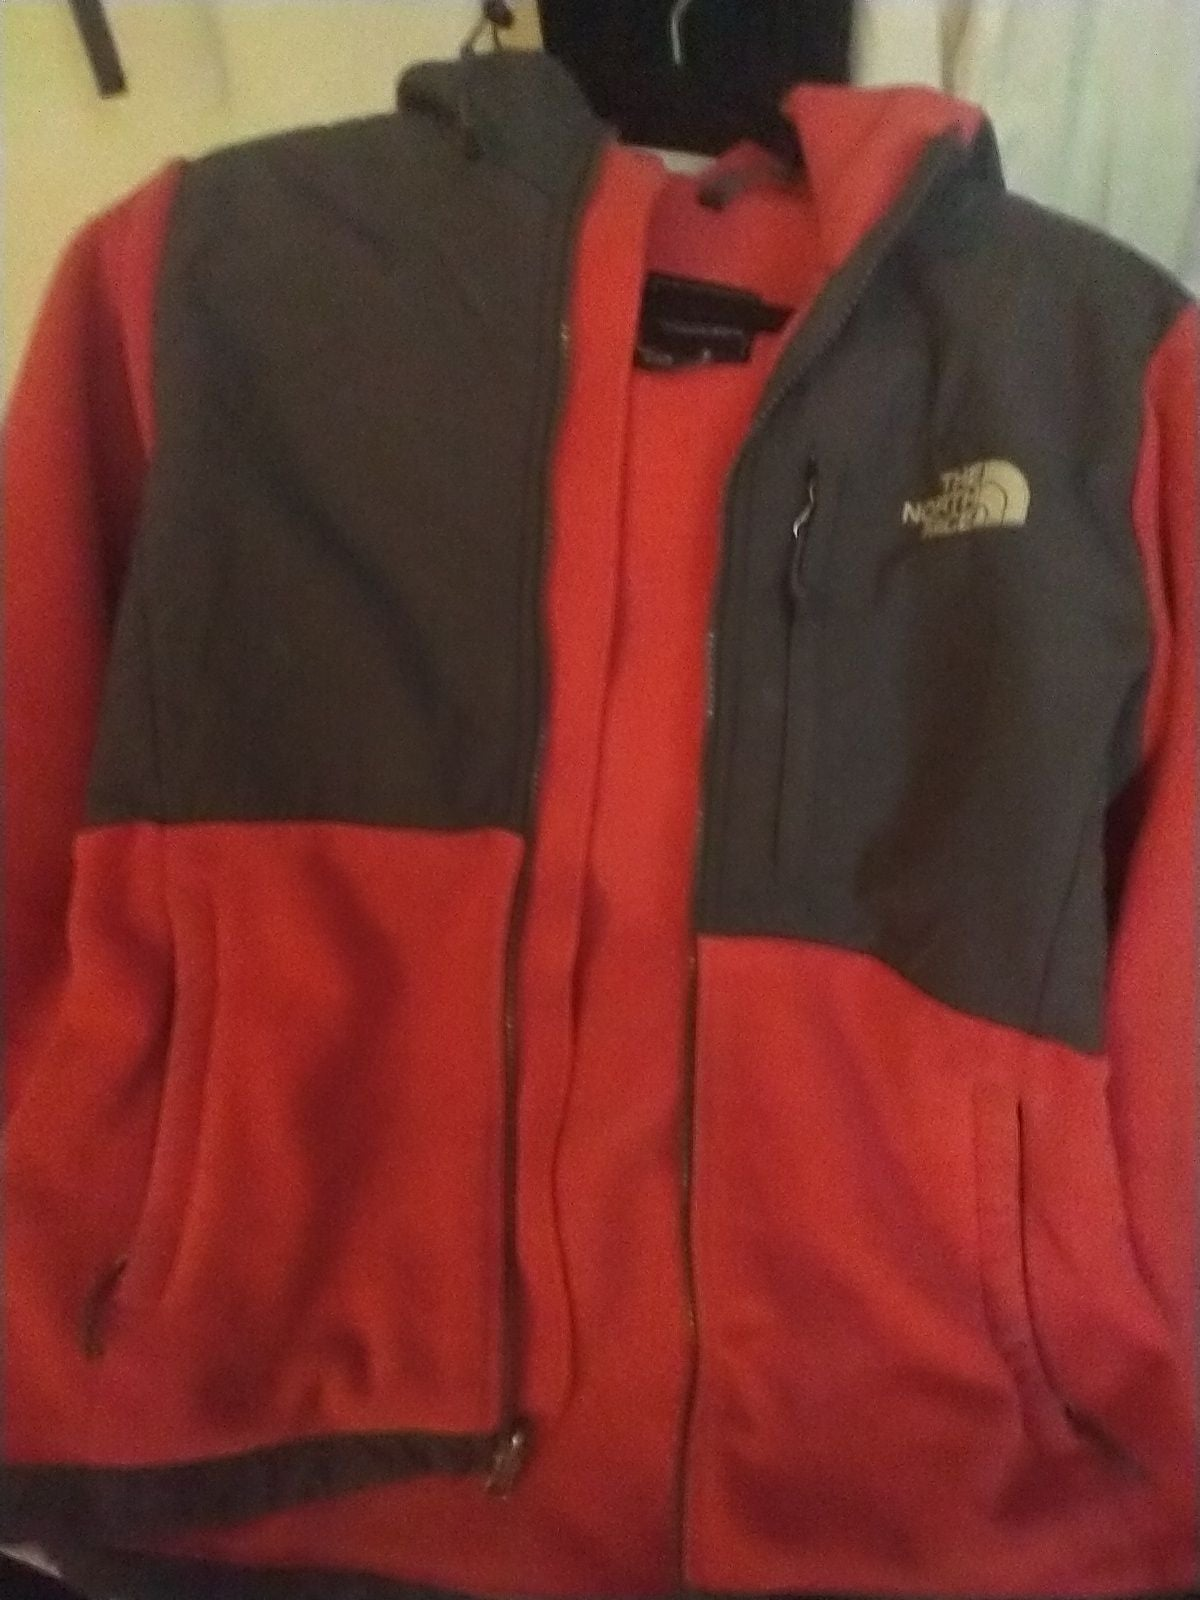 North Face jacket juniors